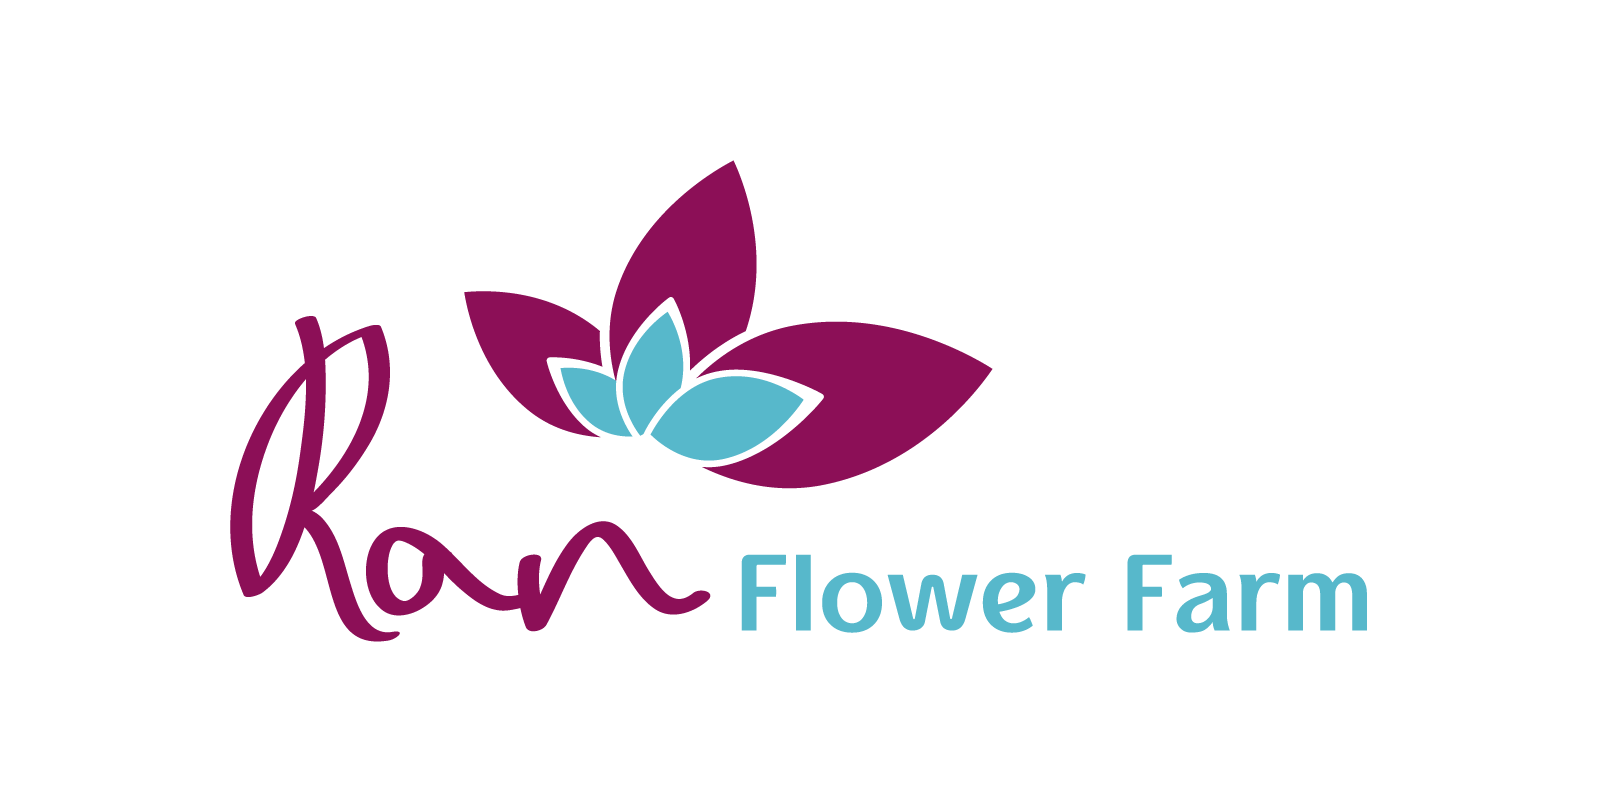 https://bigeyes.co.il/wp-content/uploads/2019/06/Ran-Flower-Farm-2.png